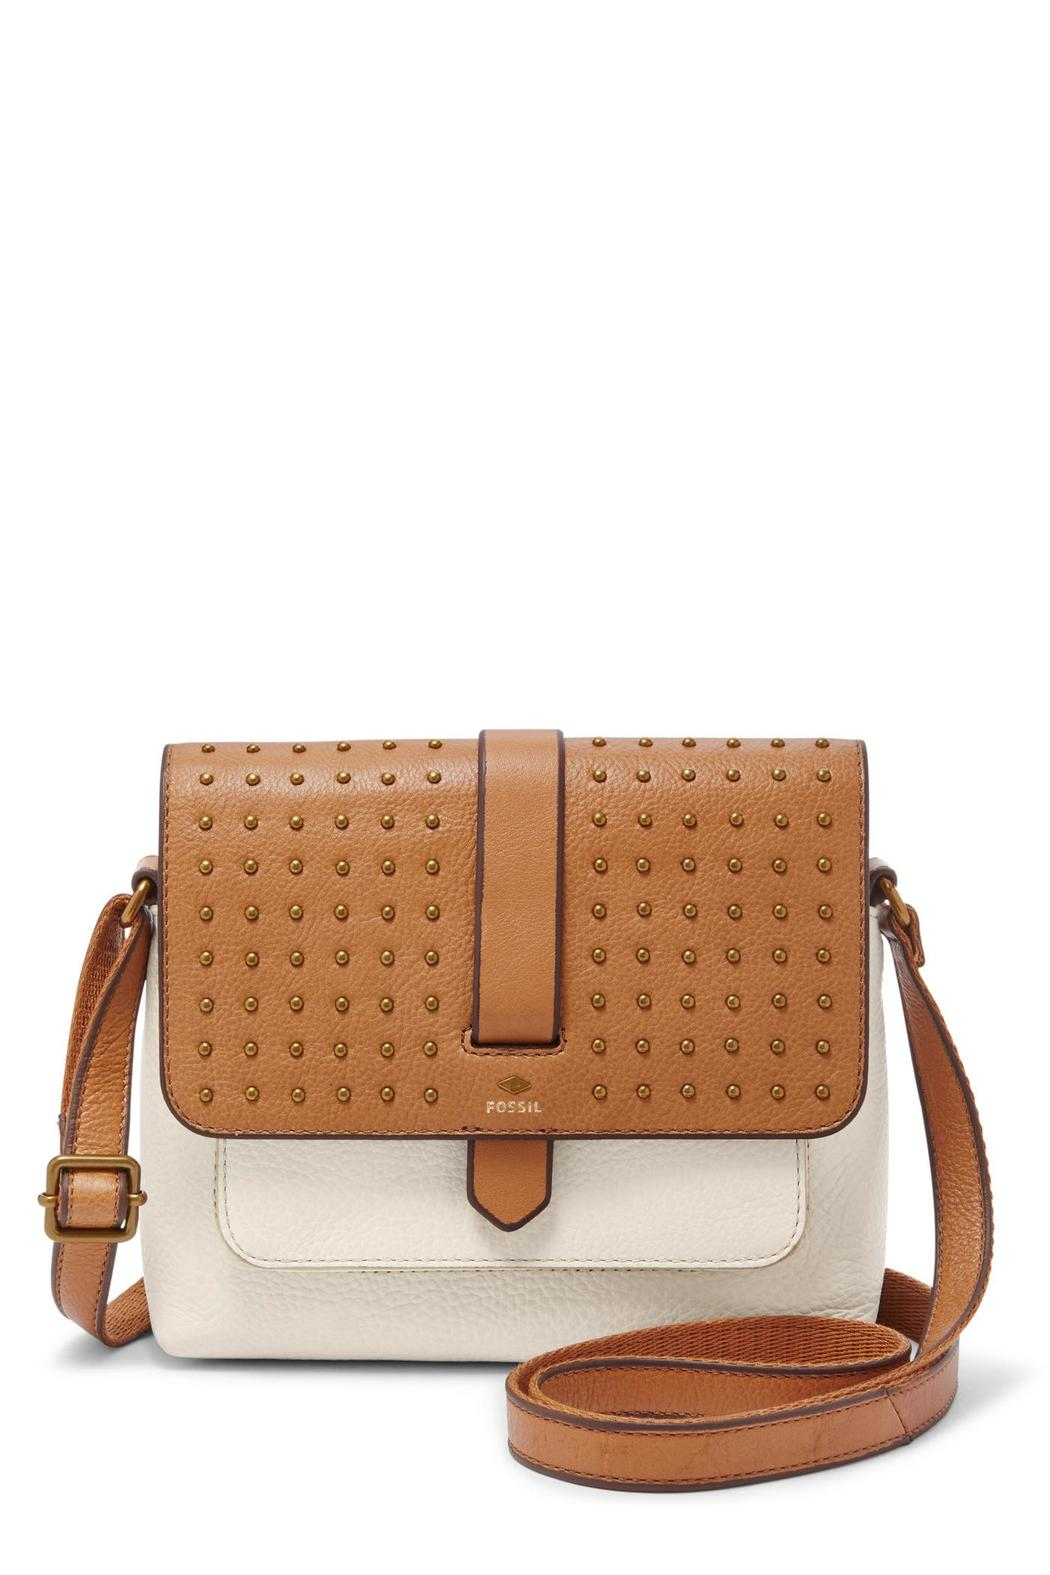 3a00fffcd Fossil Kinley Small Crossbody Bag from Omaha by Material Girl ...